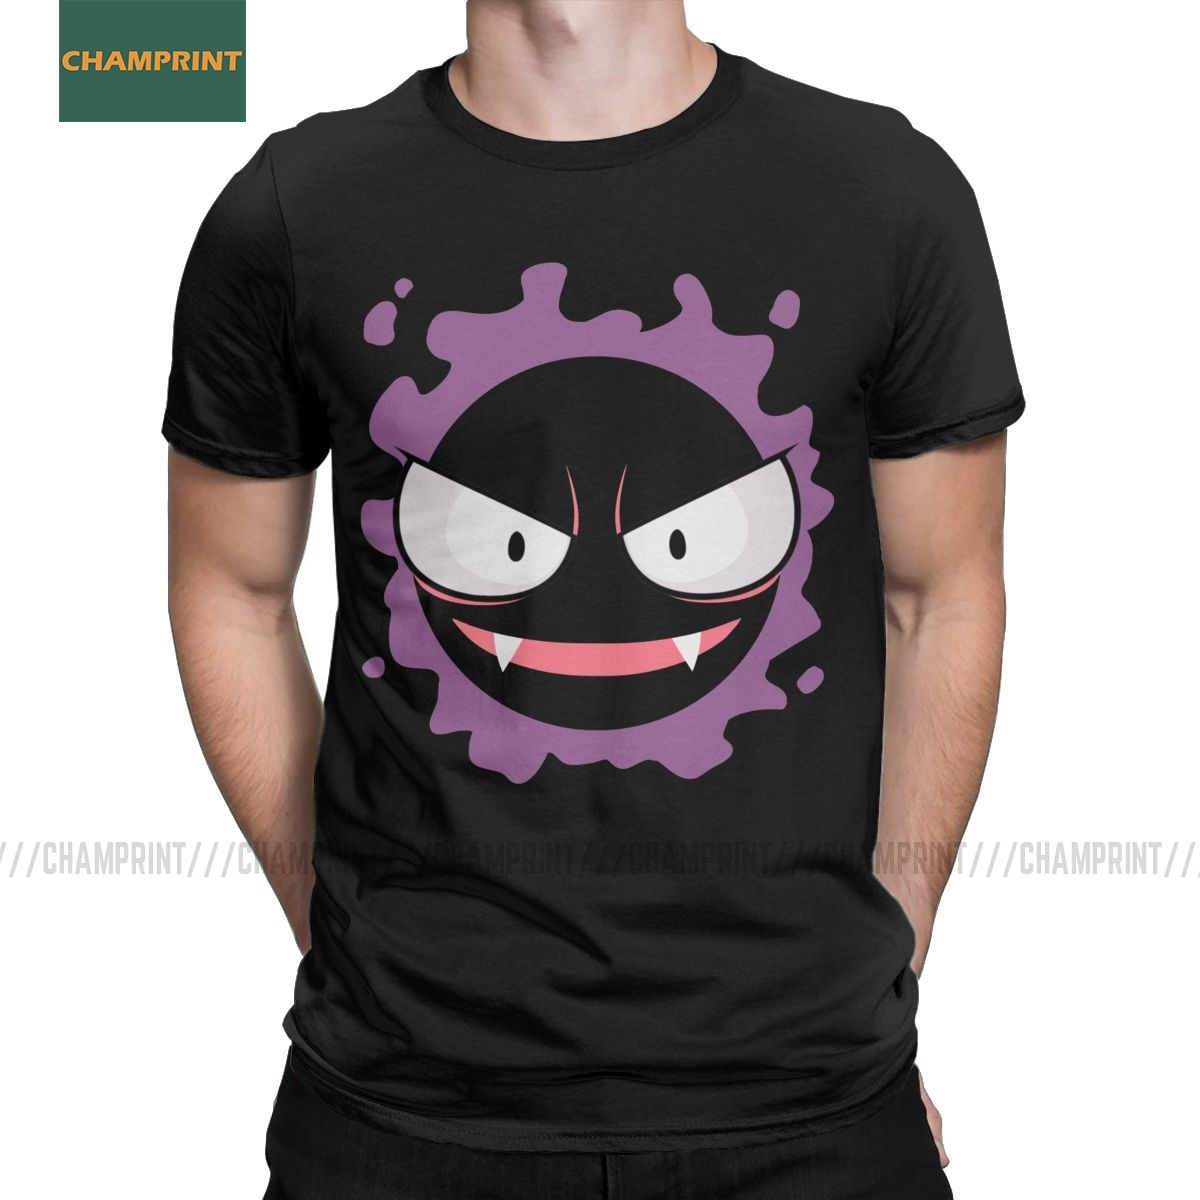 Men T-Shirt Gastly Gengar Novelty Cotton Tees Short Sleeve Kaiju Japan Pokemon Pocket Monster Cartoon Anime T Shirt Round Collar